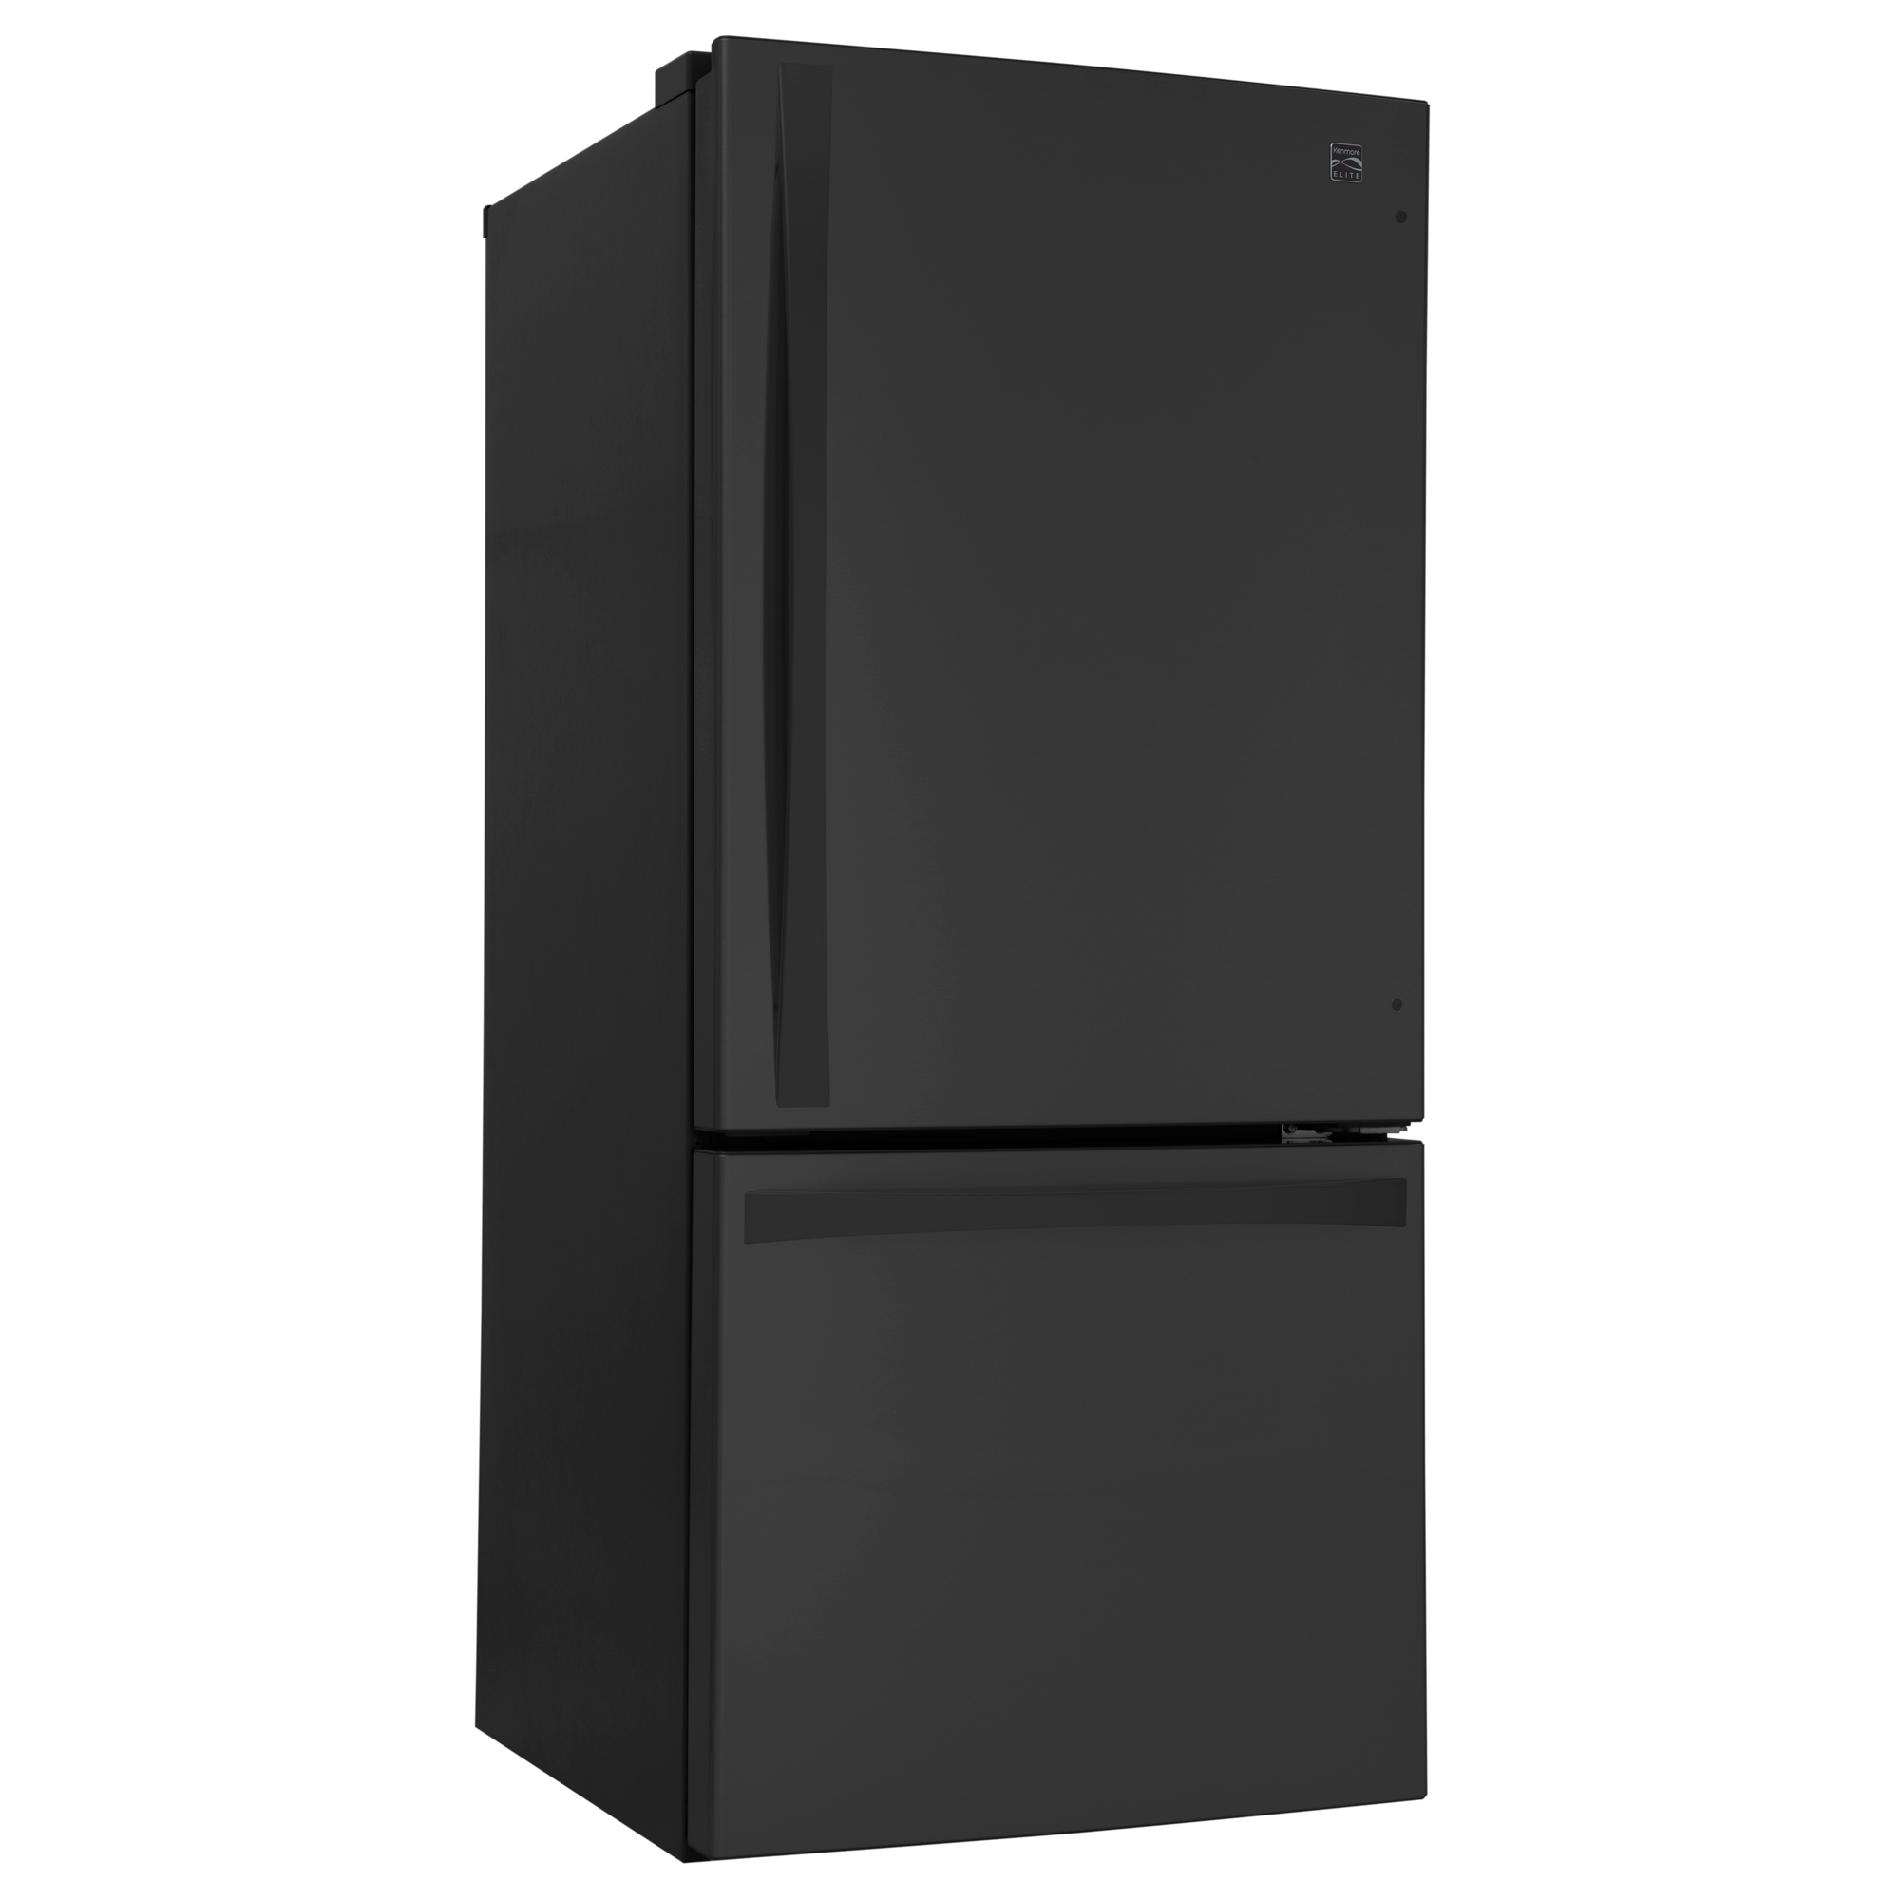 Kenmore Elite 79029 22.1 cu. ft. Bottom-Freezer Refrigerator – Black